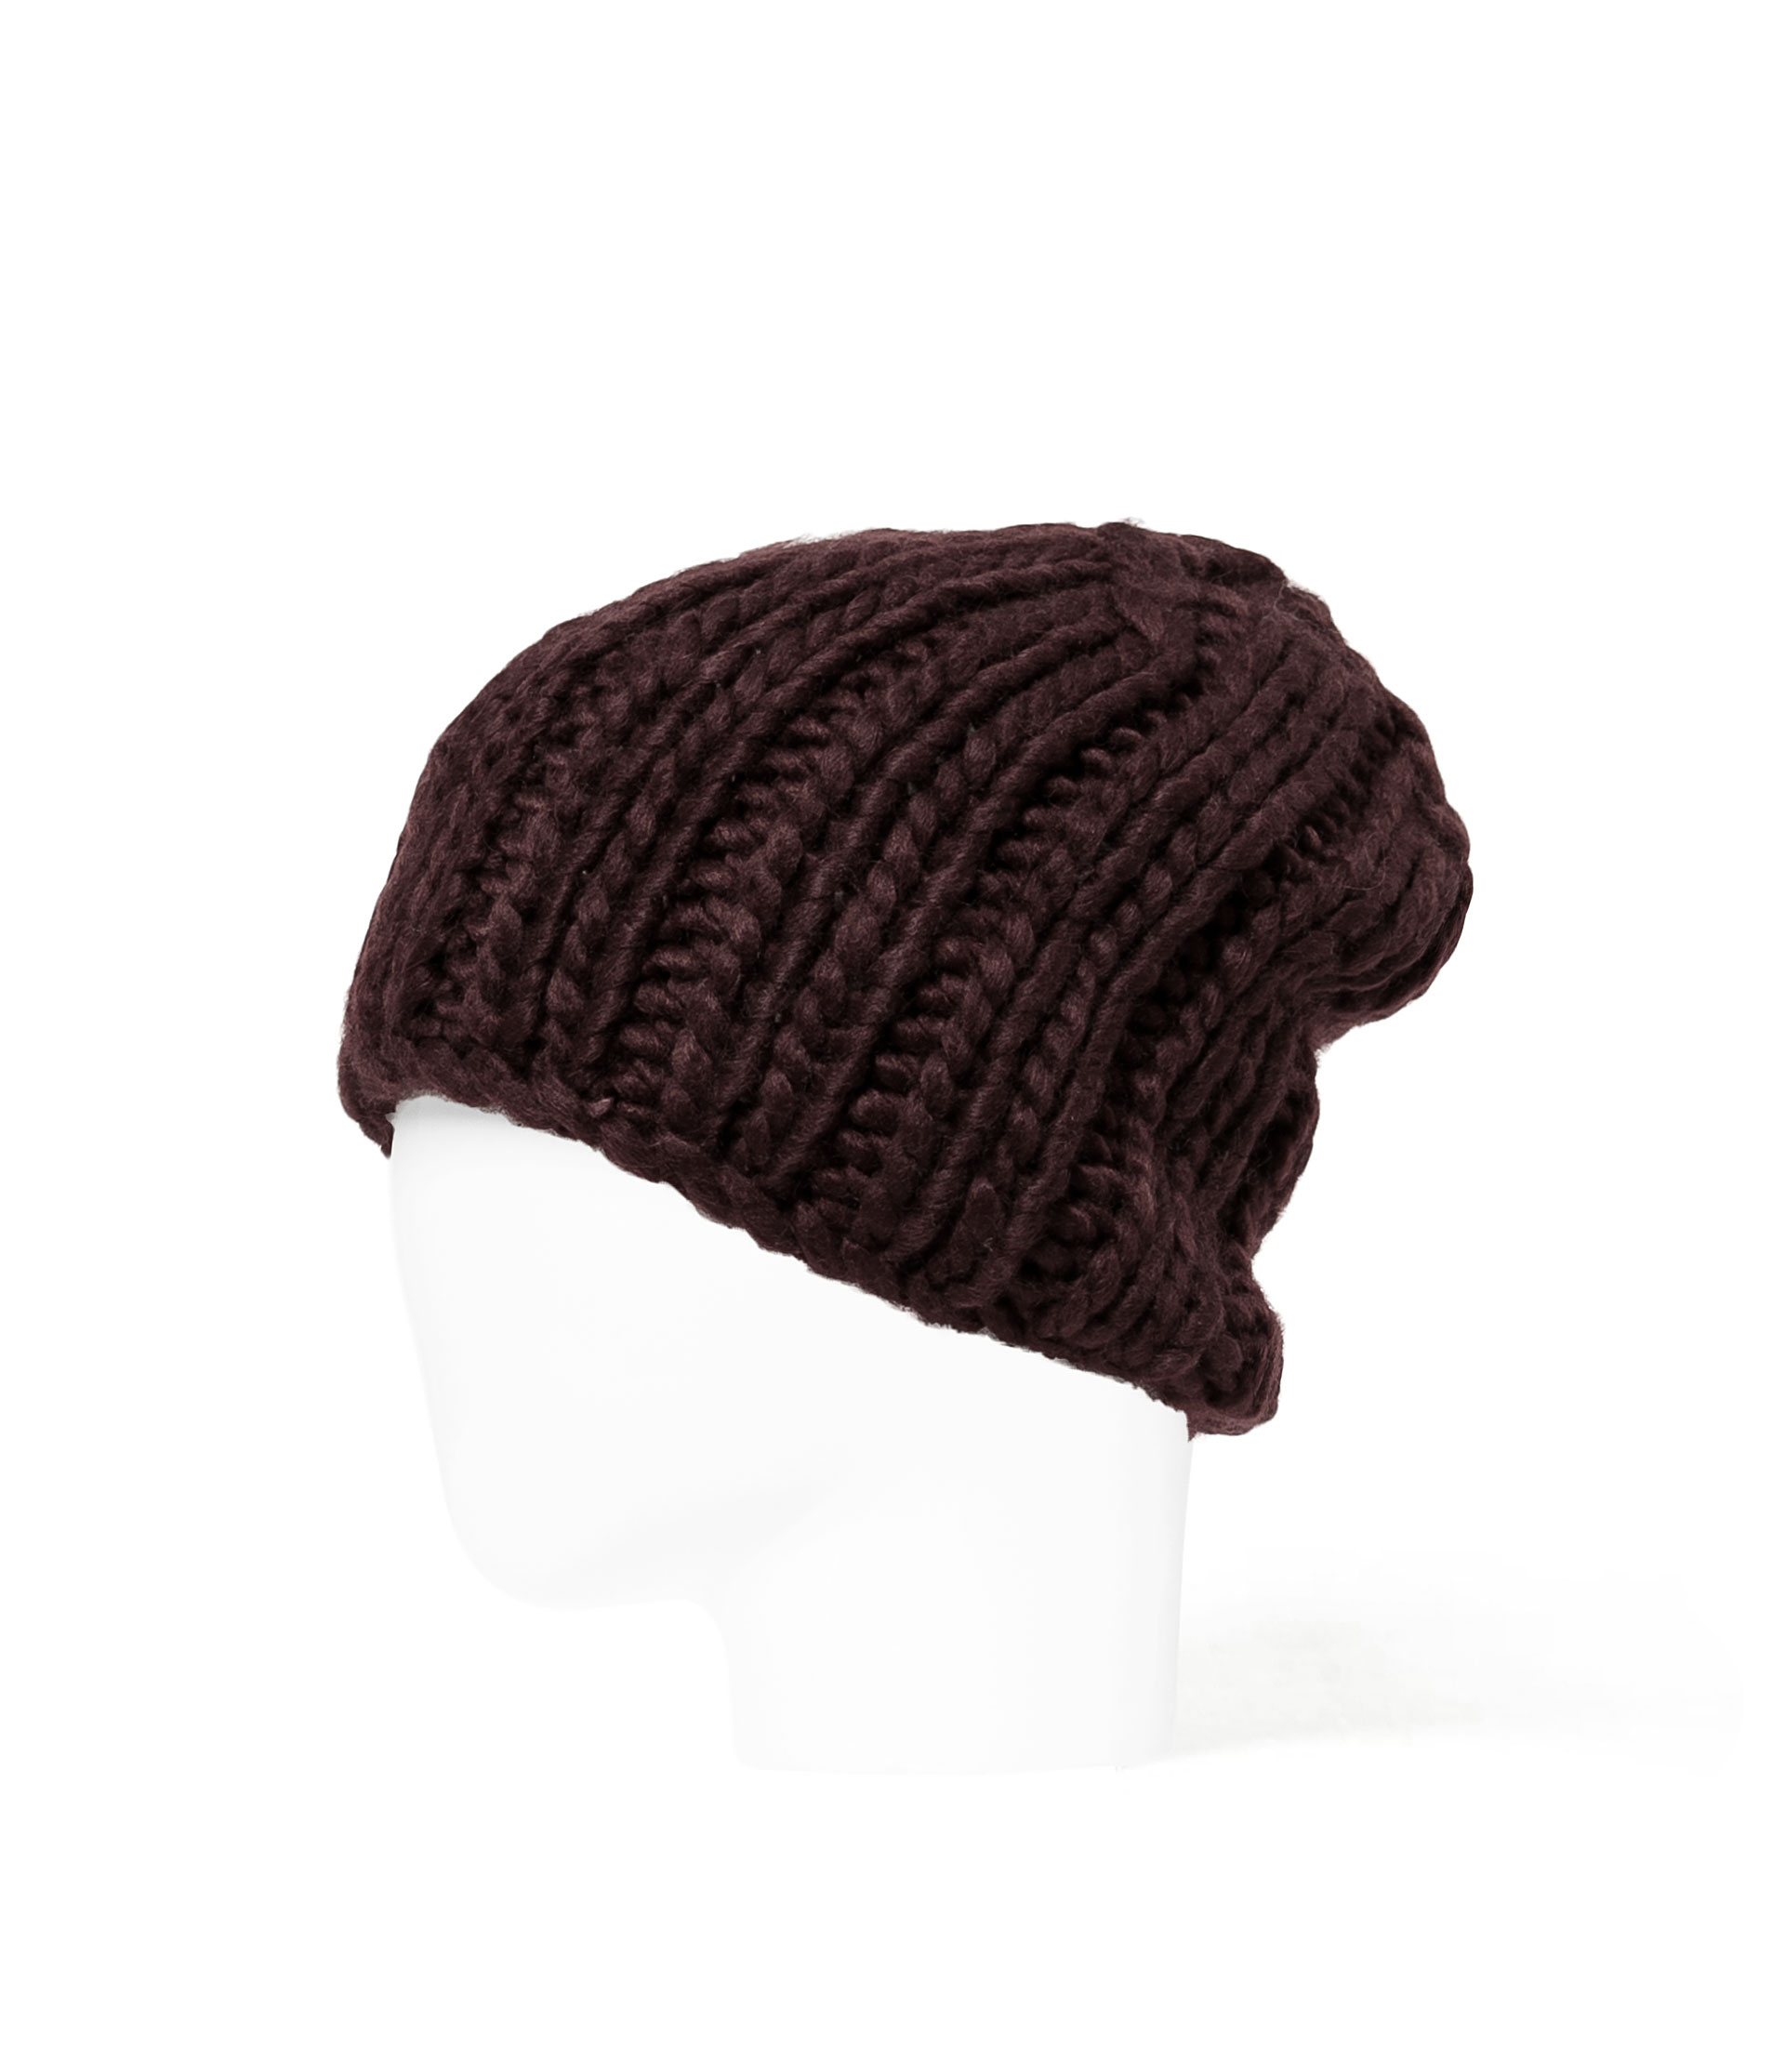 Knitting Chunky Hat : Zara chunky knit beanie hat in brown for men maroon lyst